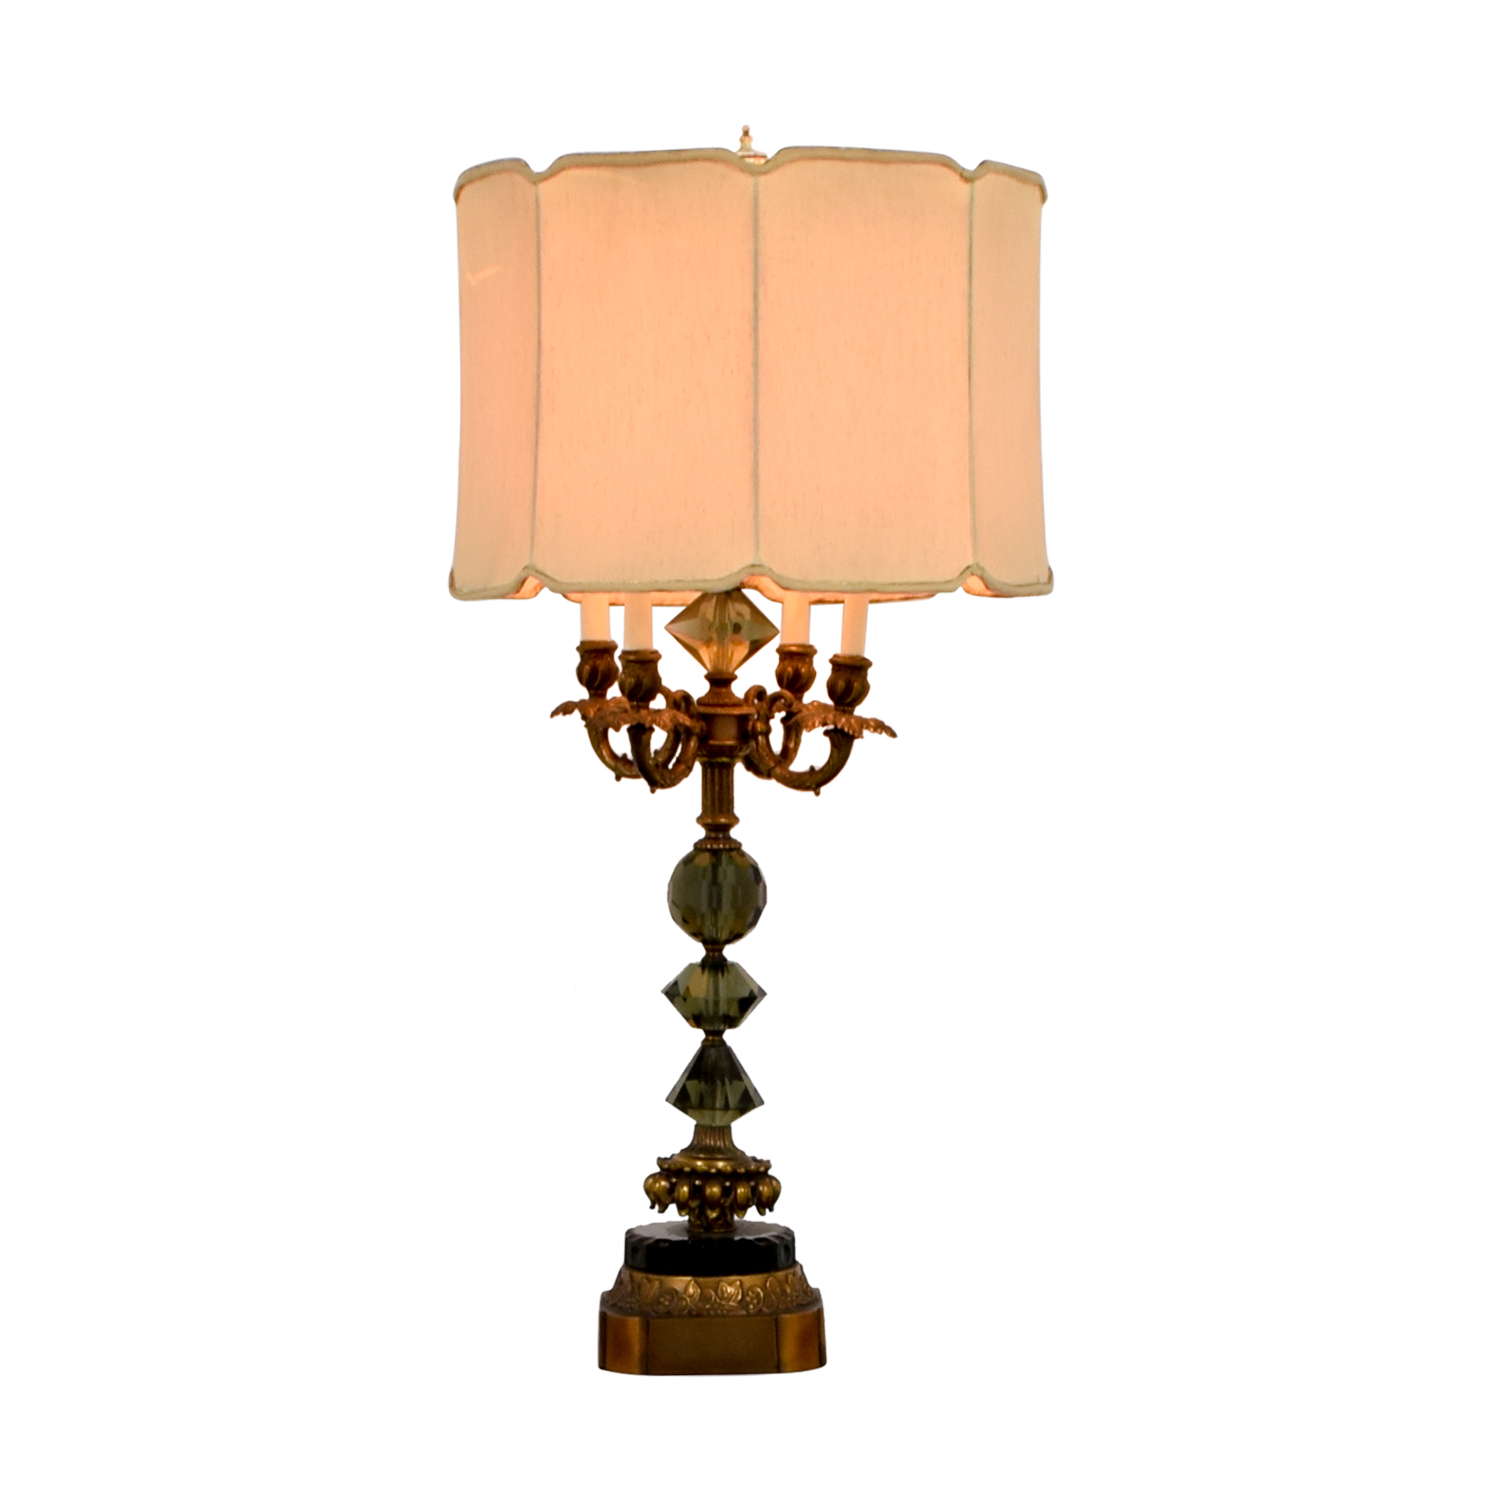 Vintage Mid-Century Gold and Crystal Table Lamp Copper / Glass / Beige